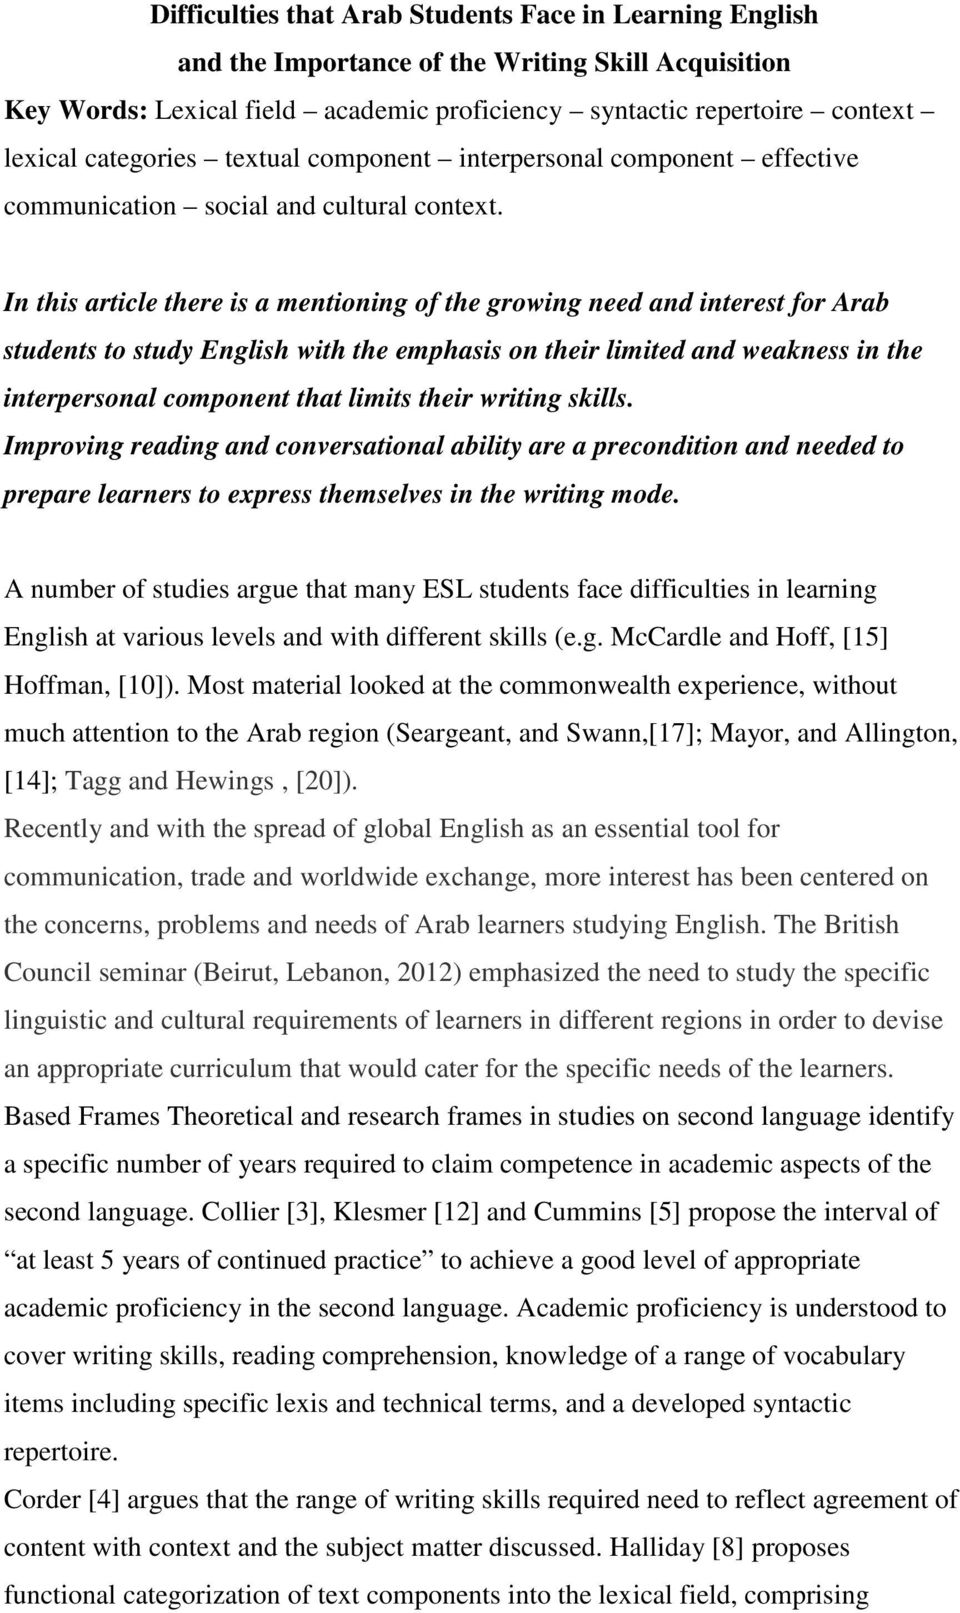 In this article there is a mentioning of the growing need and interest for Arab students to study English with the emphasis on their limited and weakness in the interpersonal component that limits